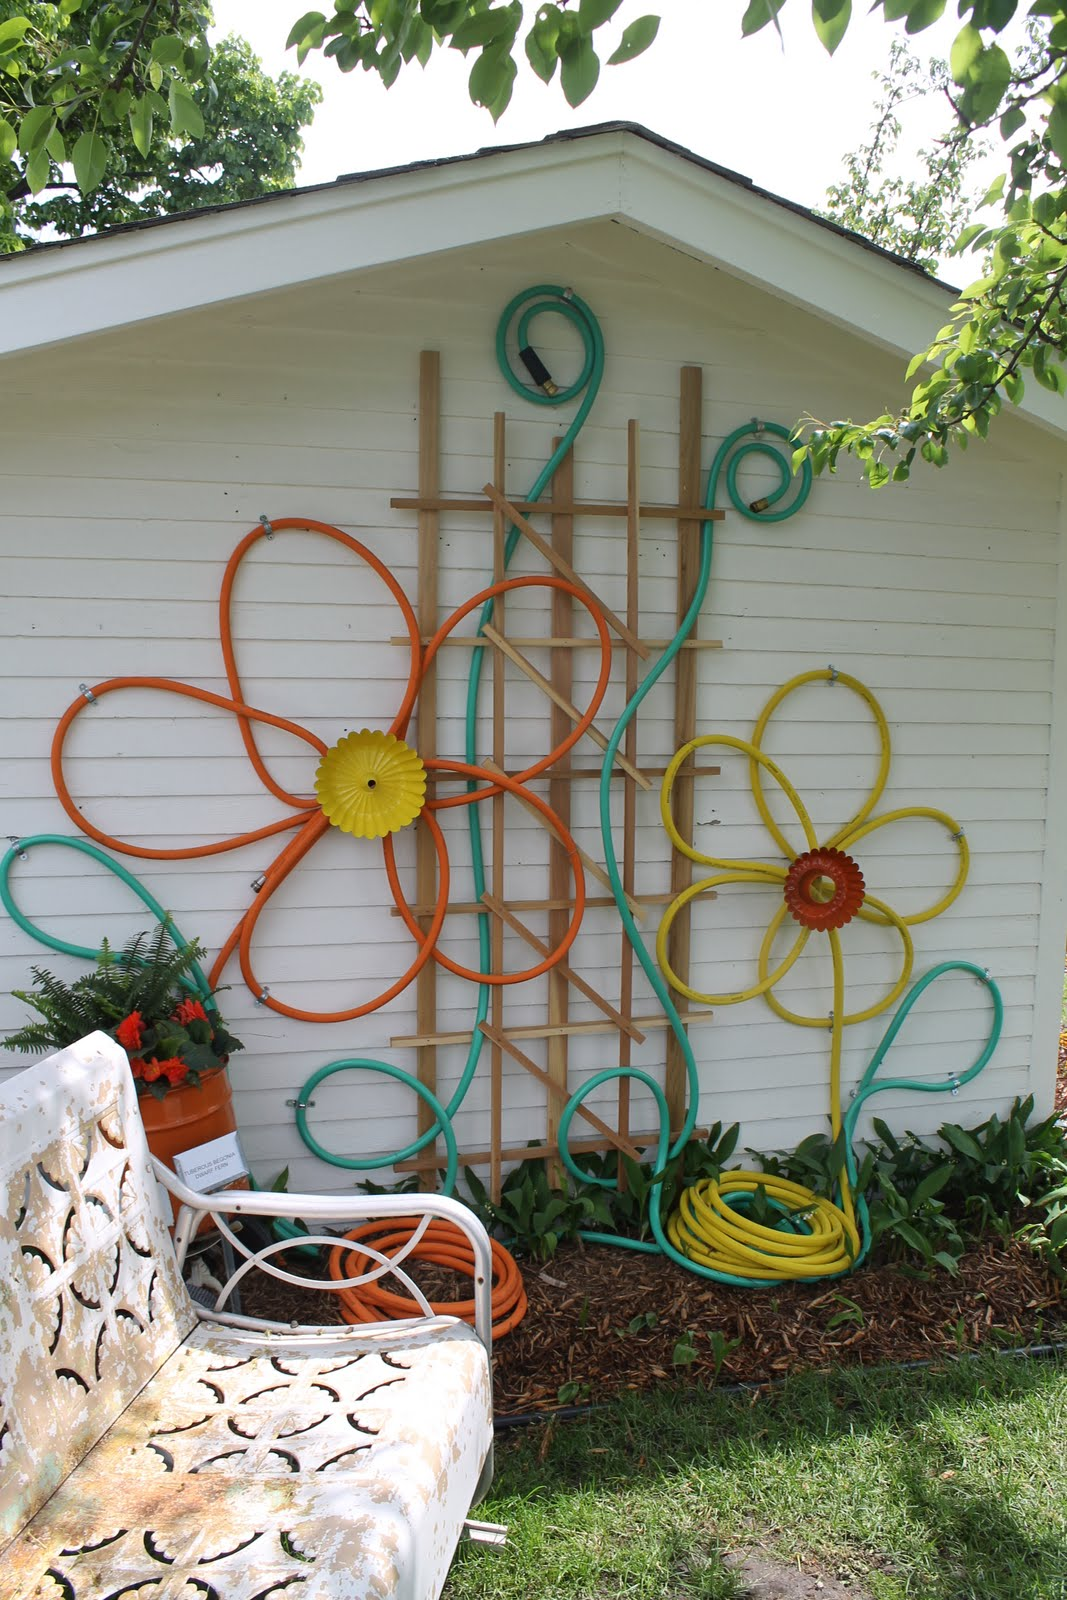 Delicieux Make Flowers From Hoses For Outdoor House Decor